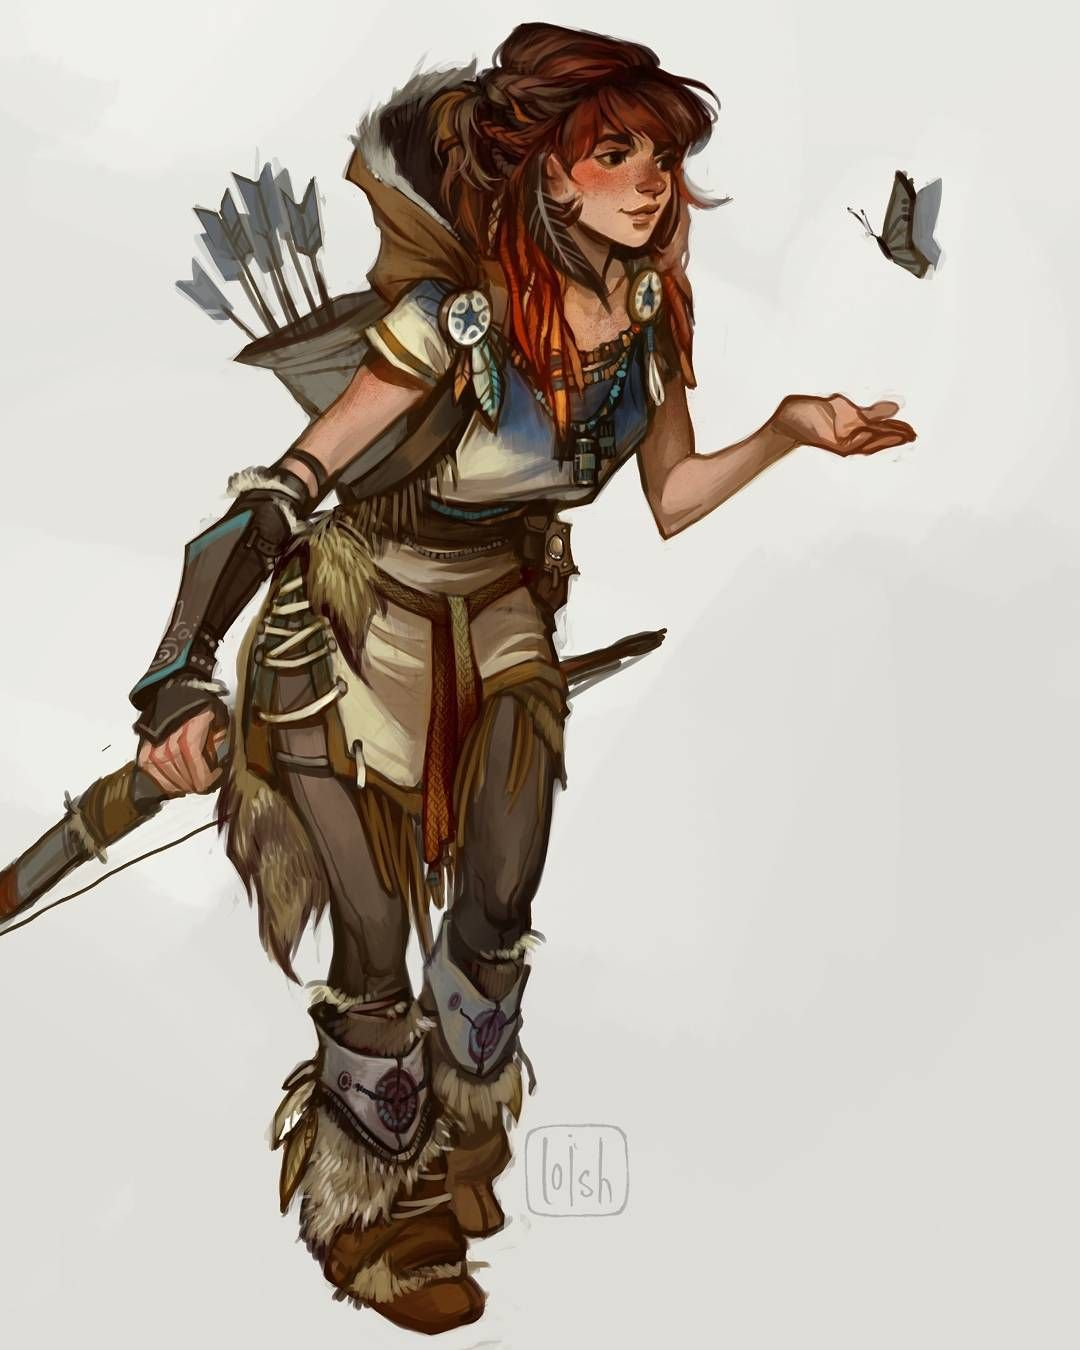 More Concept Art Of Aloy The Lead Character From Horizon Zero Dawn I Worked On Her D Dungeons And Dragons Characters Character Inspiration Character Design